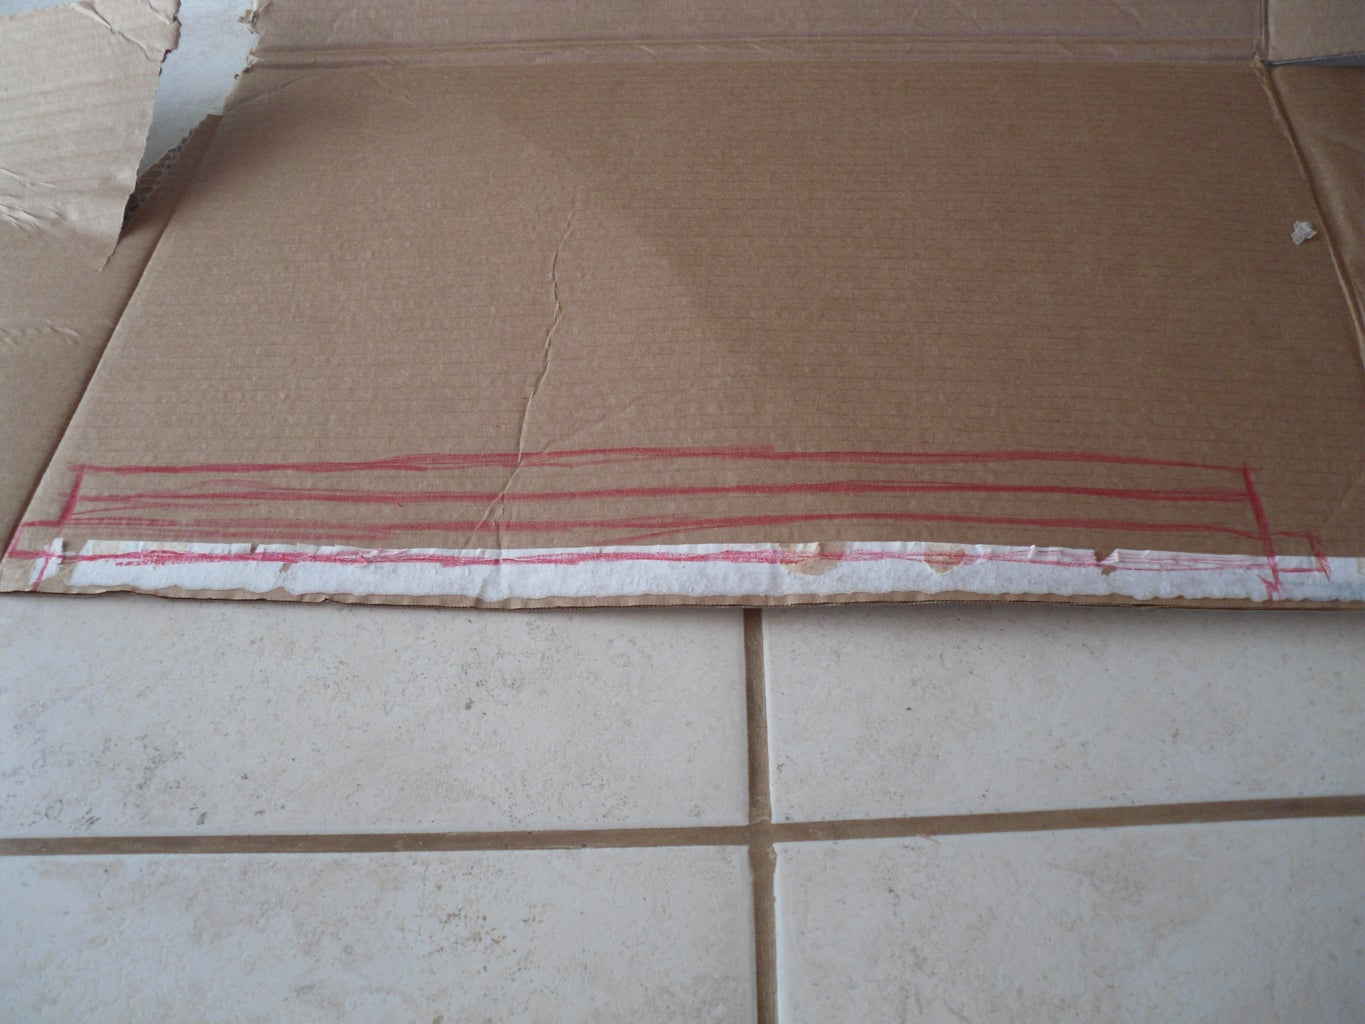 Cutting the Cardboard, Part Two